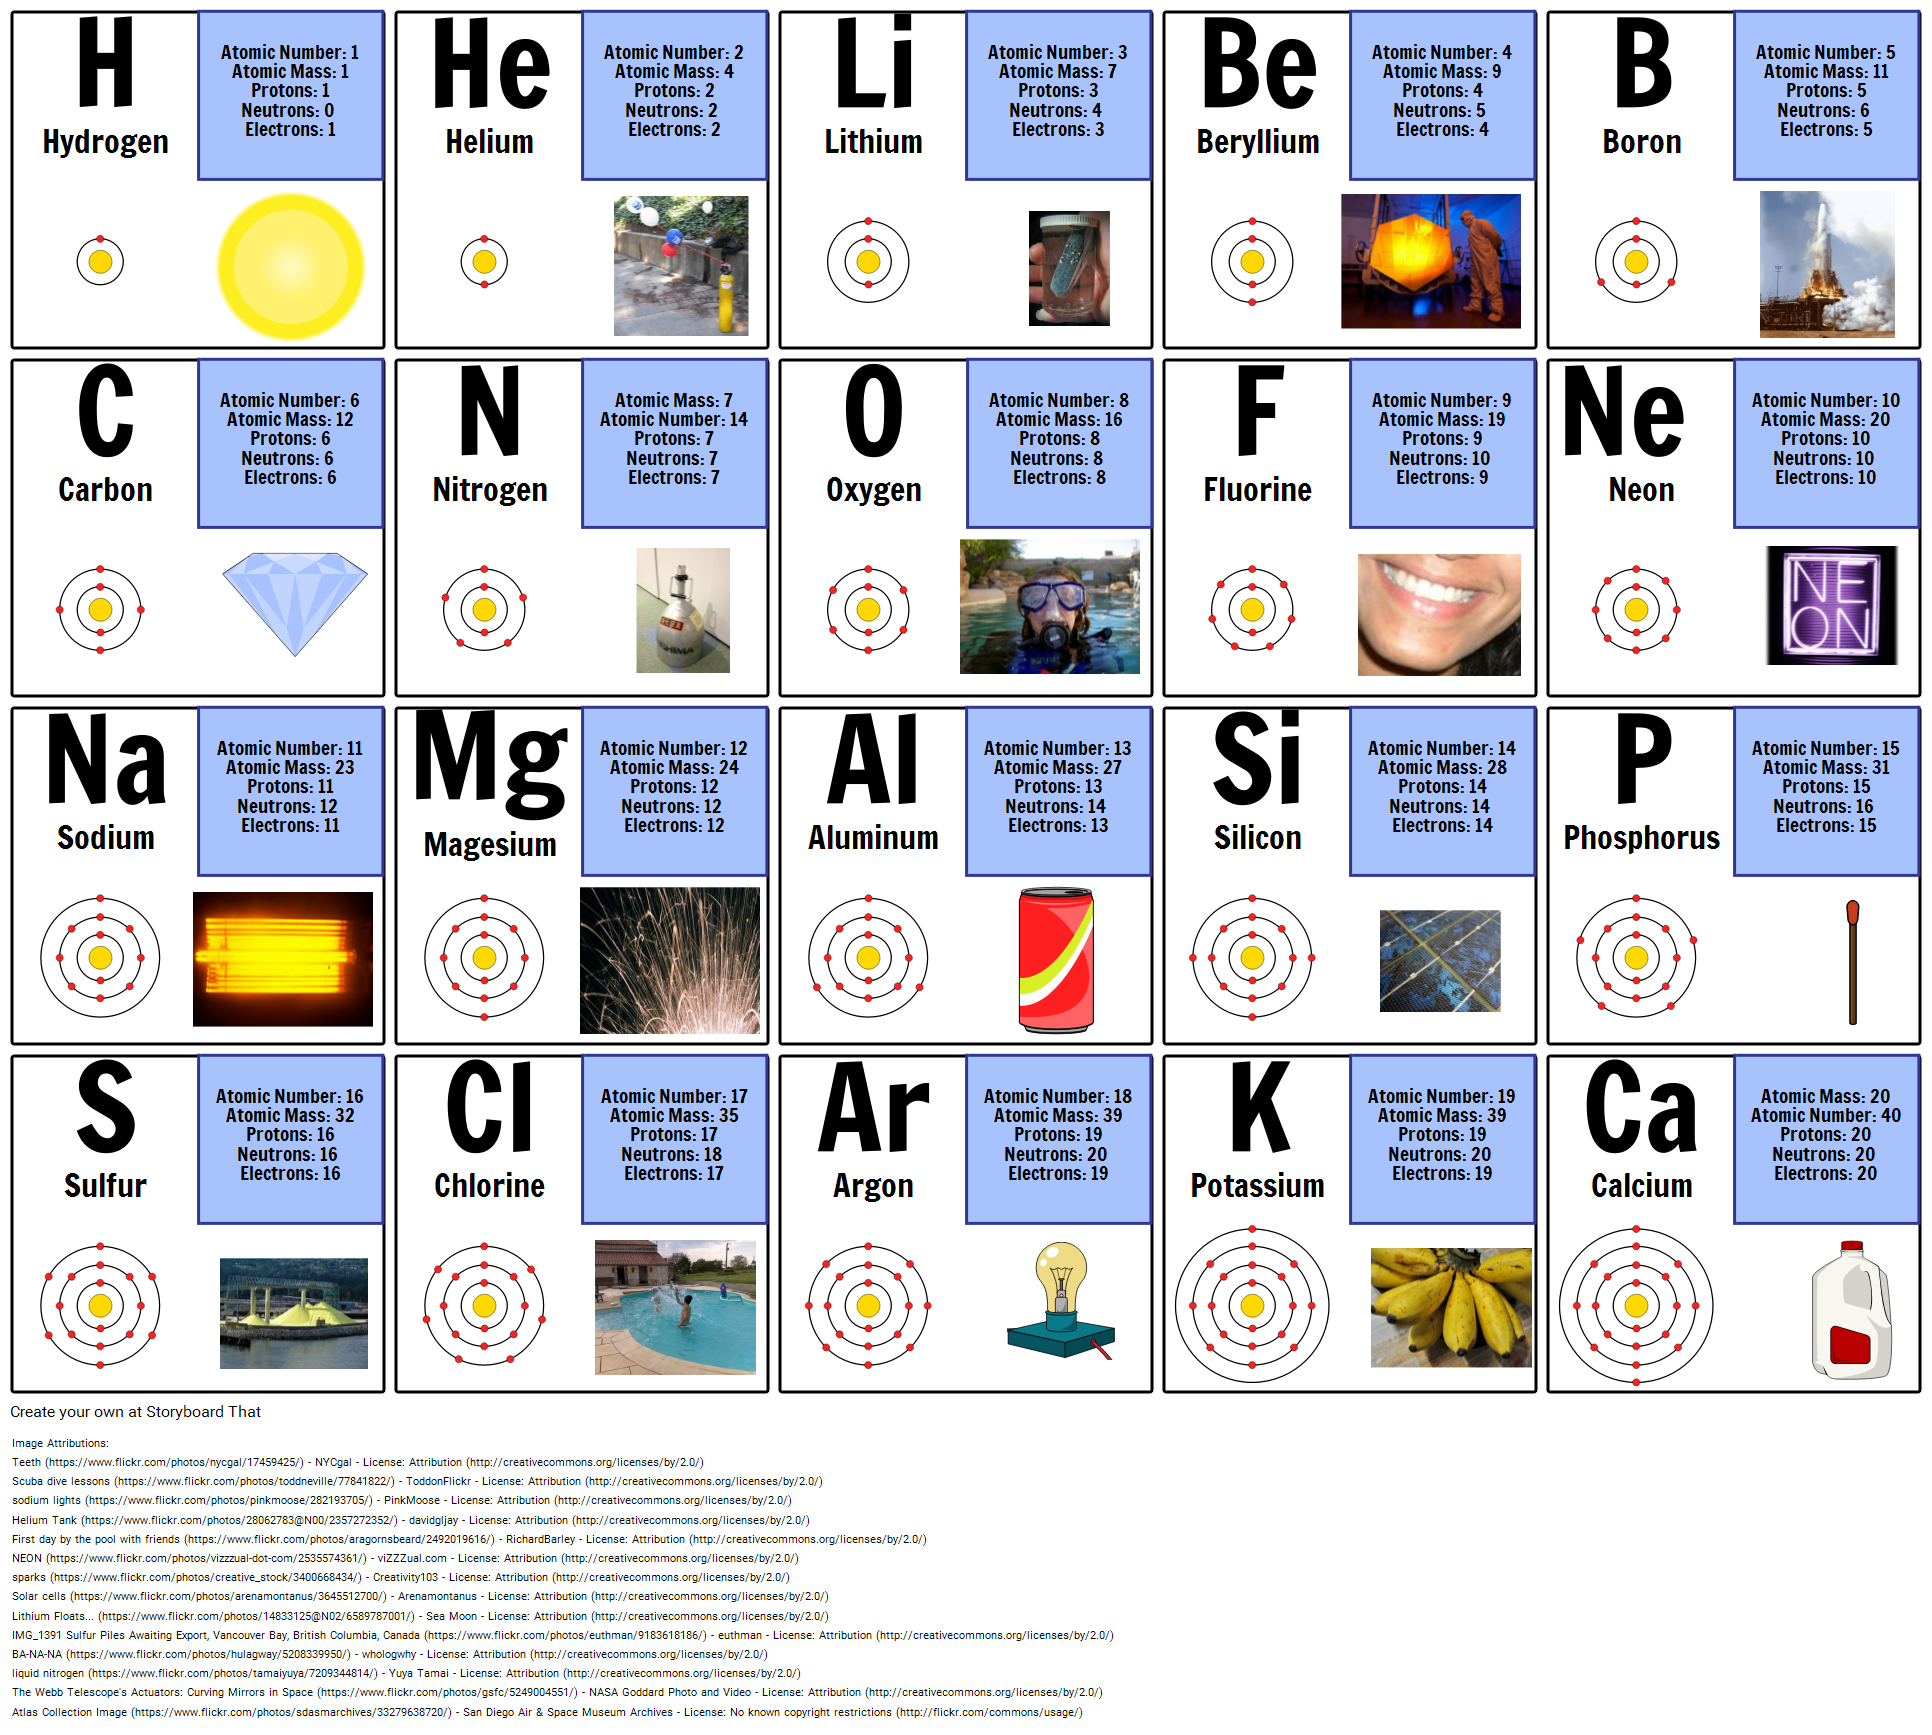 inspire students to learn about the periodic table of elements chart atomic theory atomic mass atomic number and diagram of an atom chemical element - Periodic Table Atomic Number 19